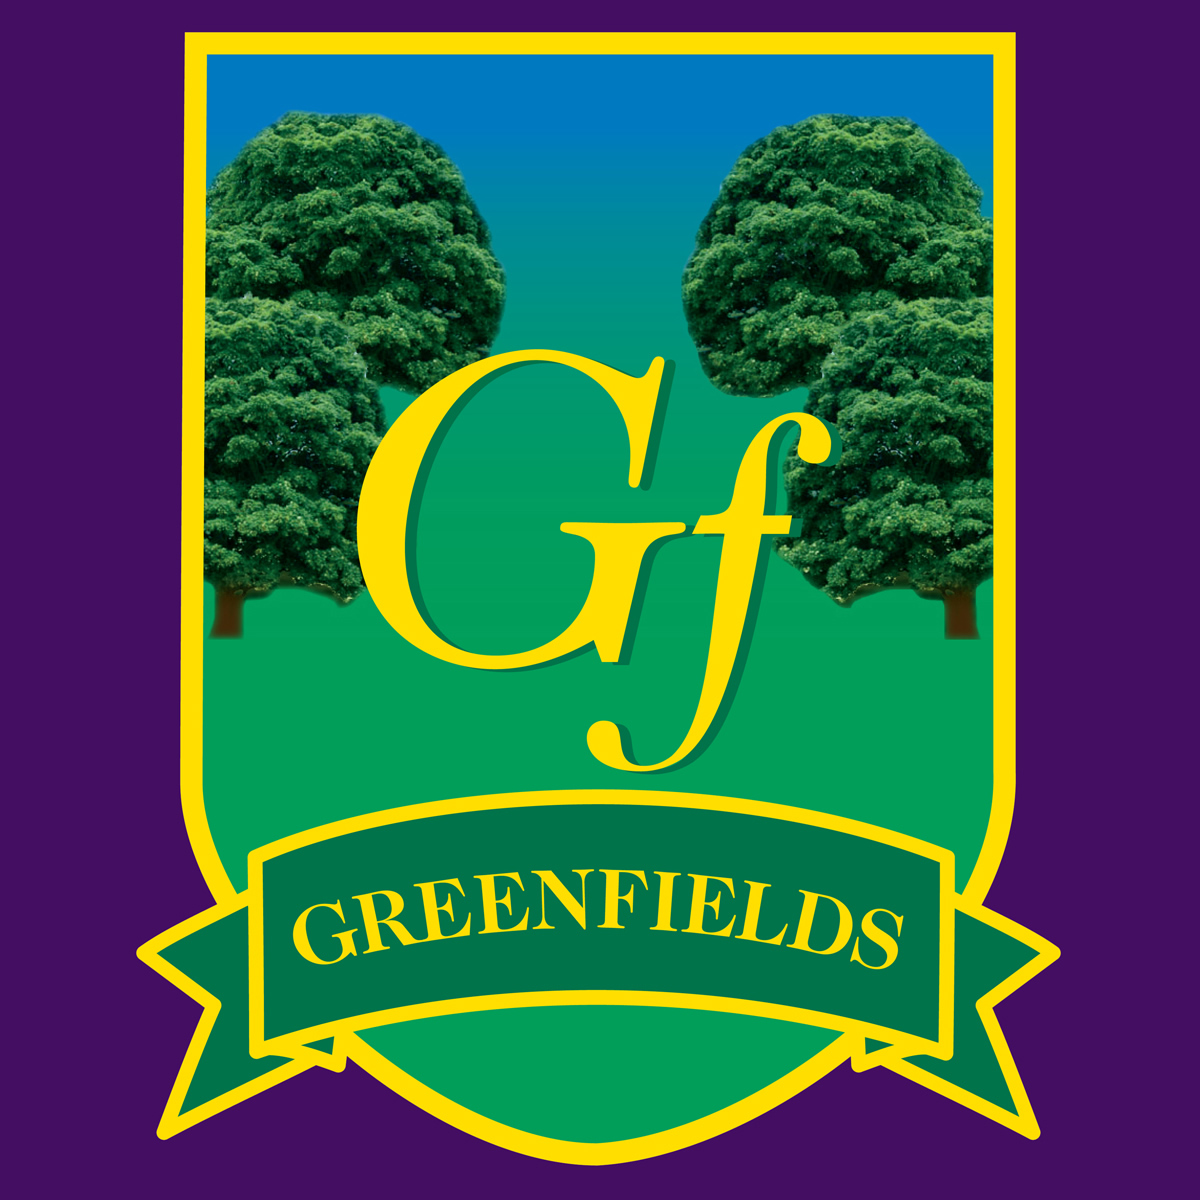 Greenfields School emblem